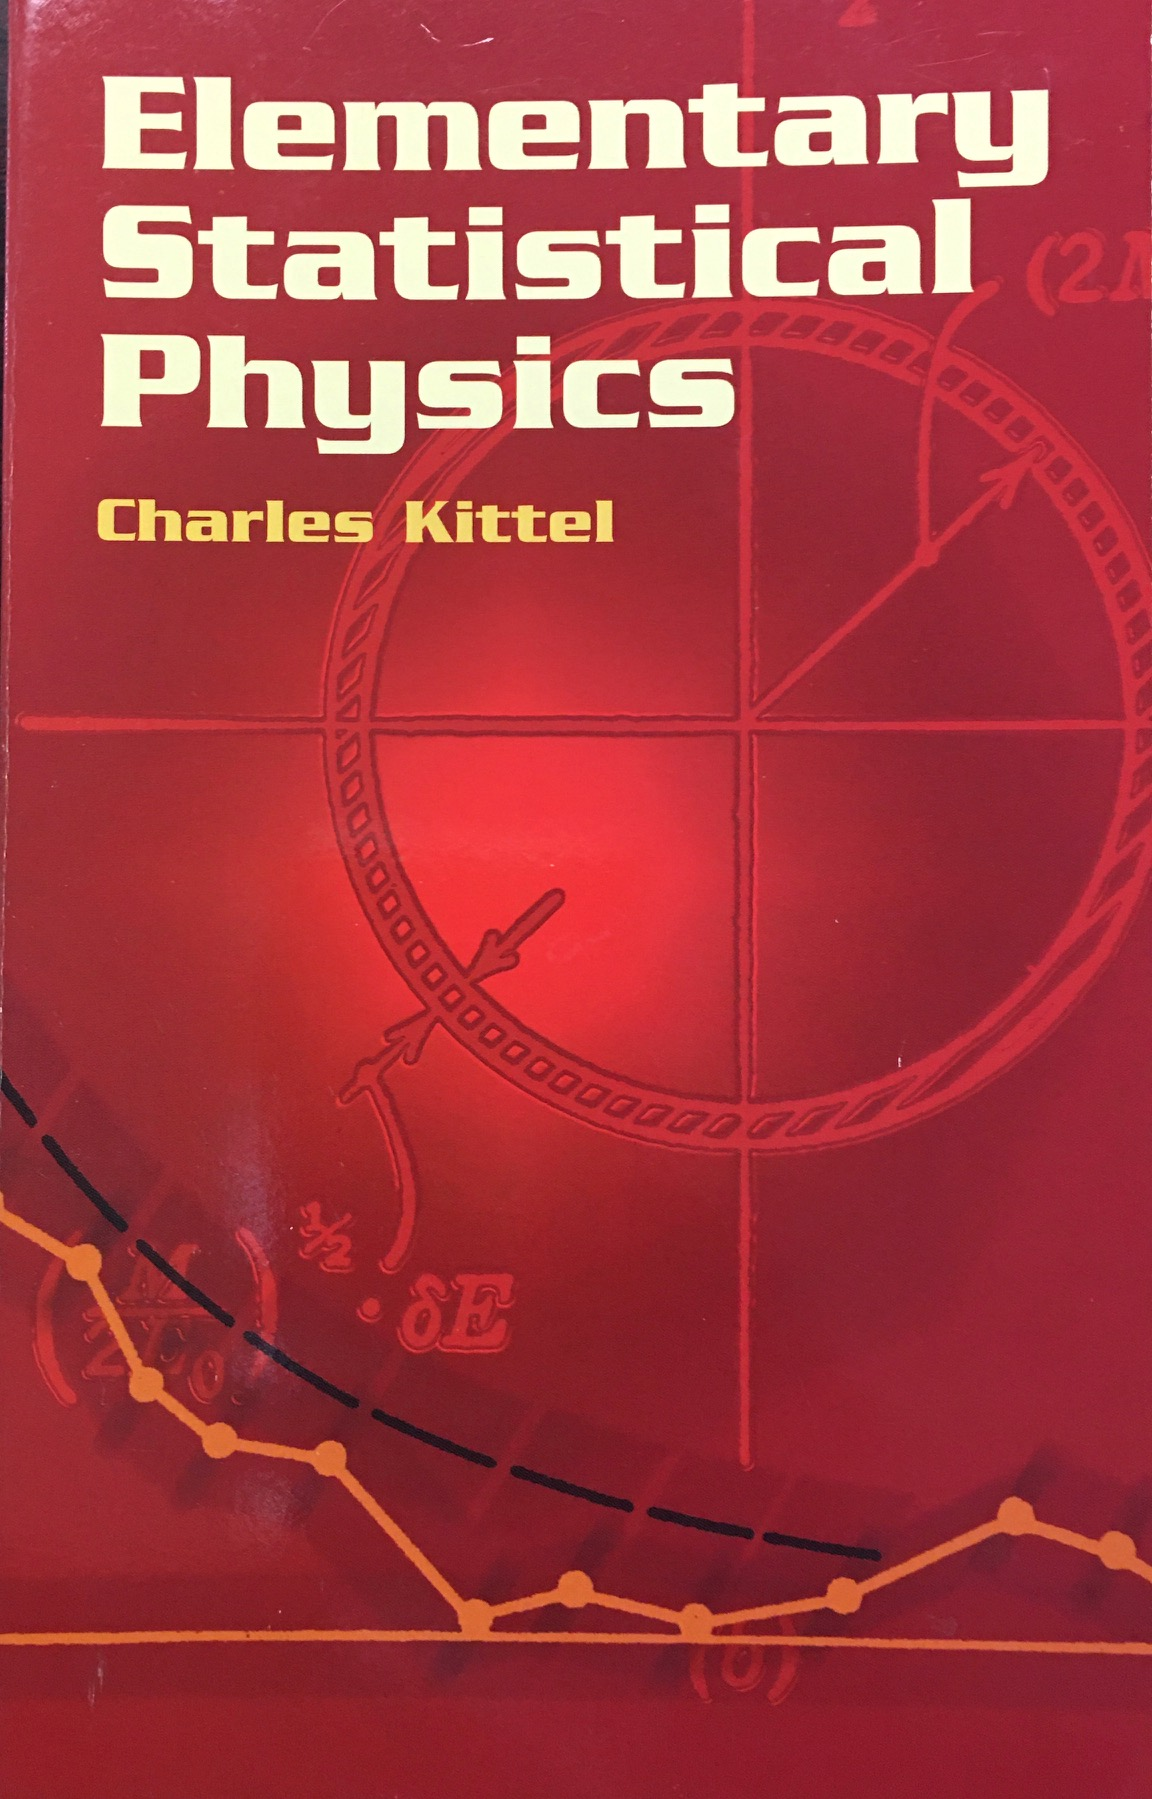 Image for Elementary Statistical Physics (Dover Books on Physics)